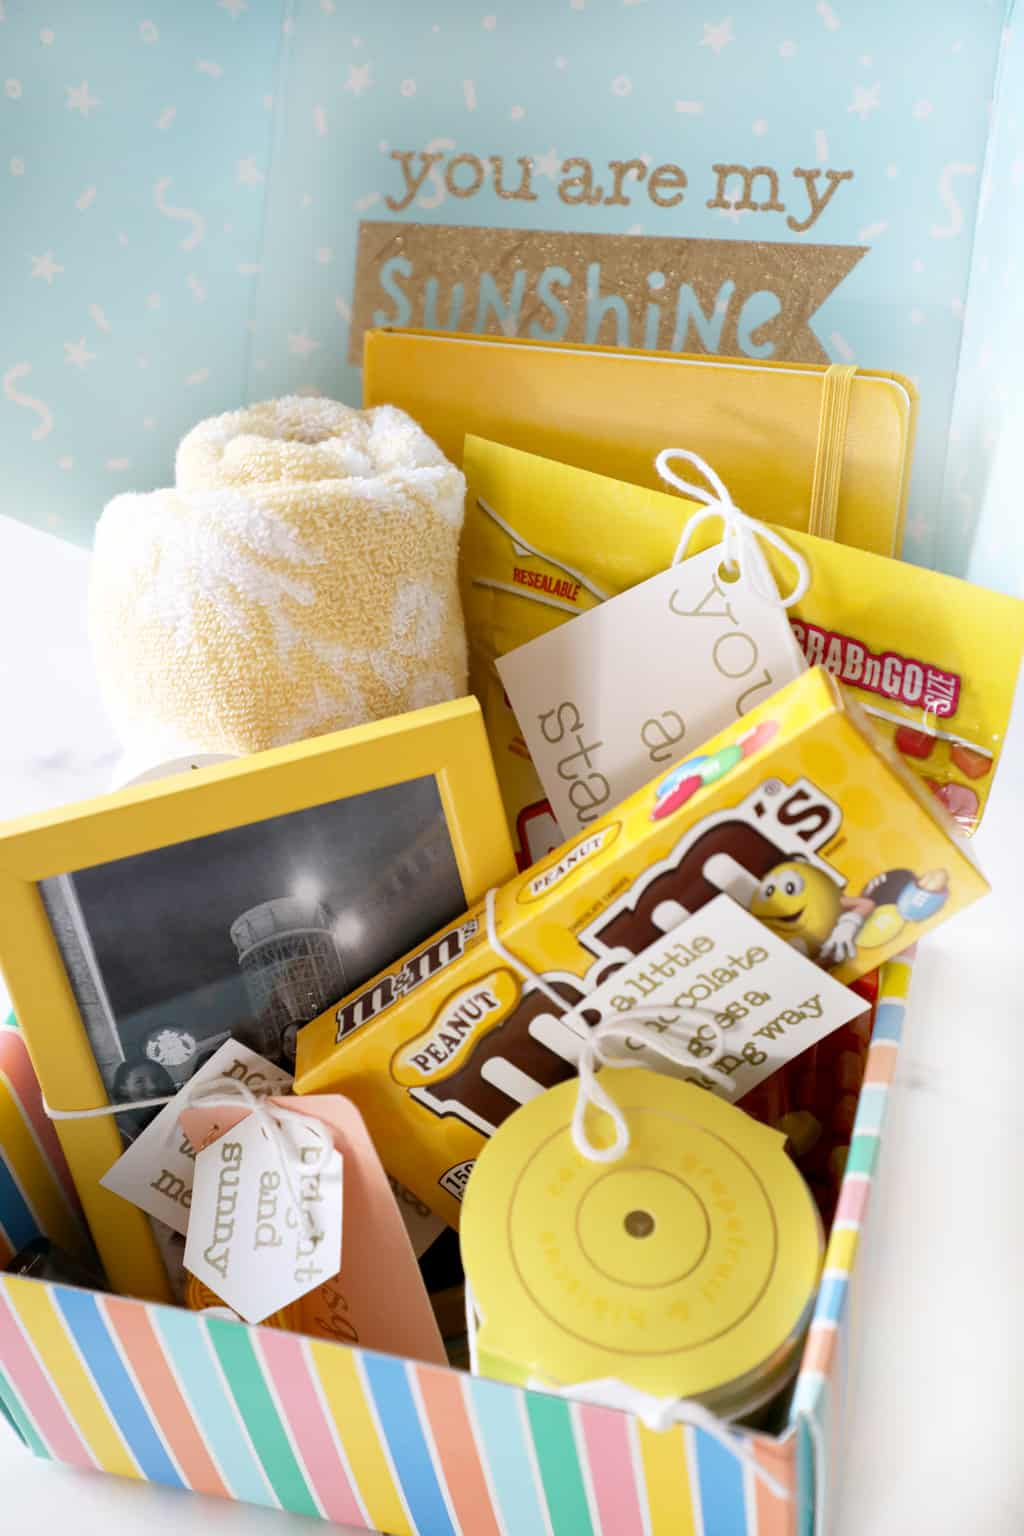 box that says you are my sunshine full of yellow gifts